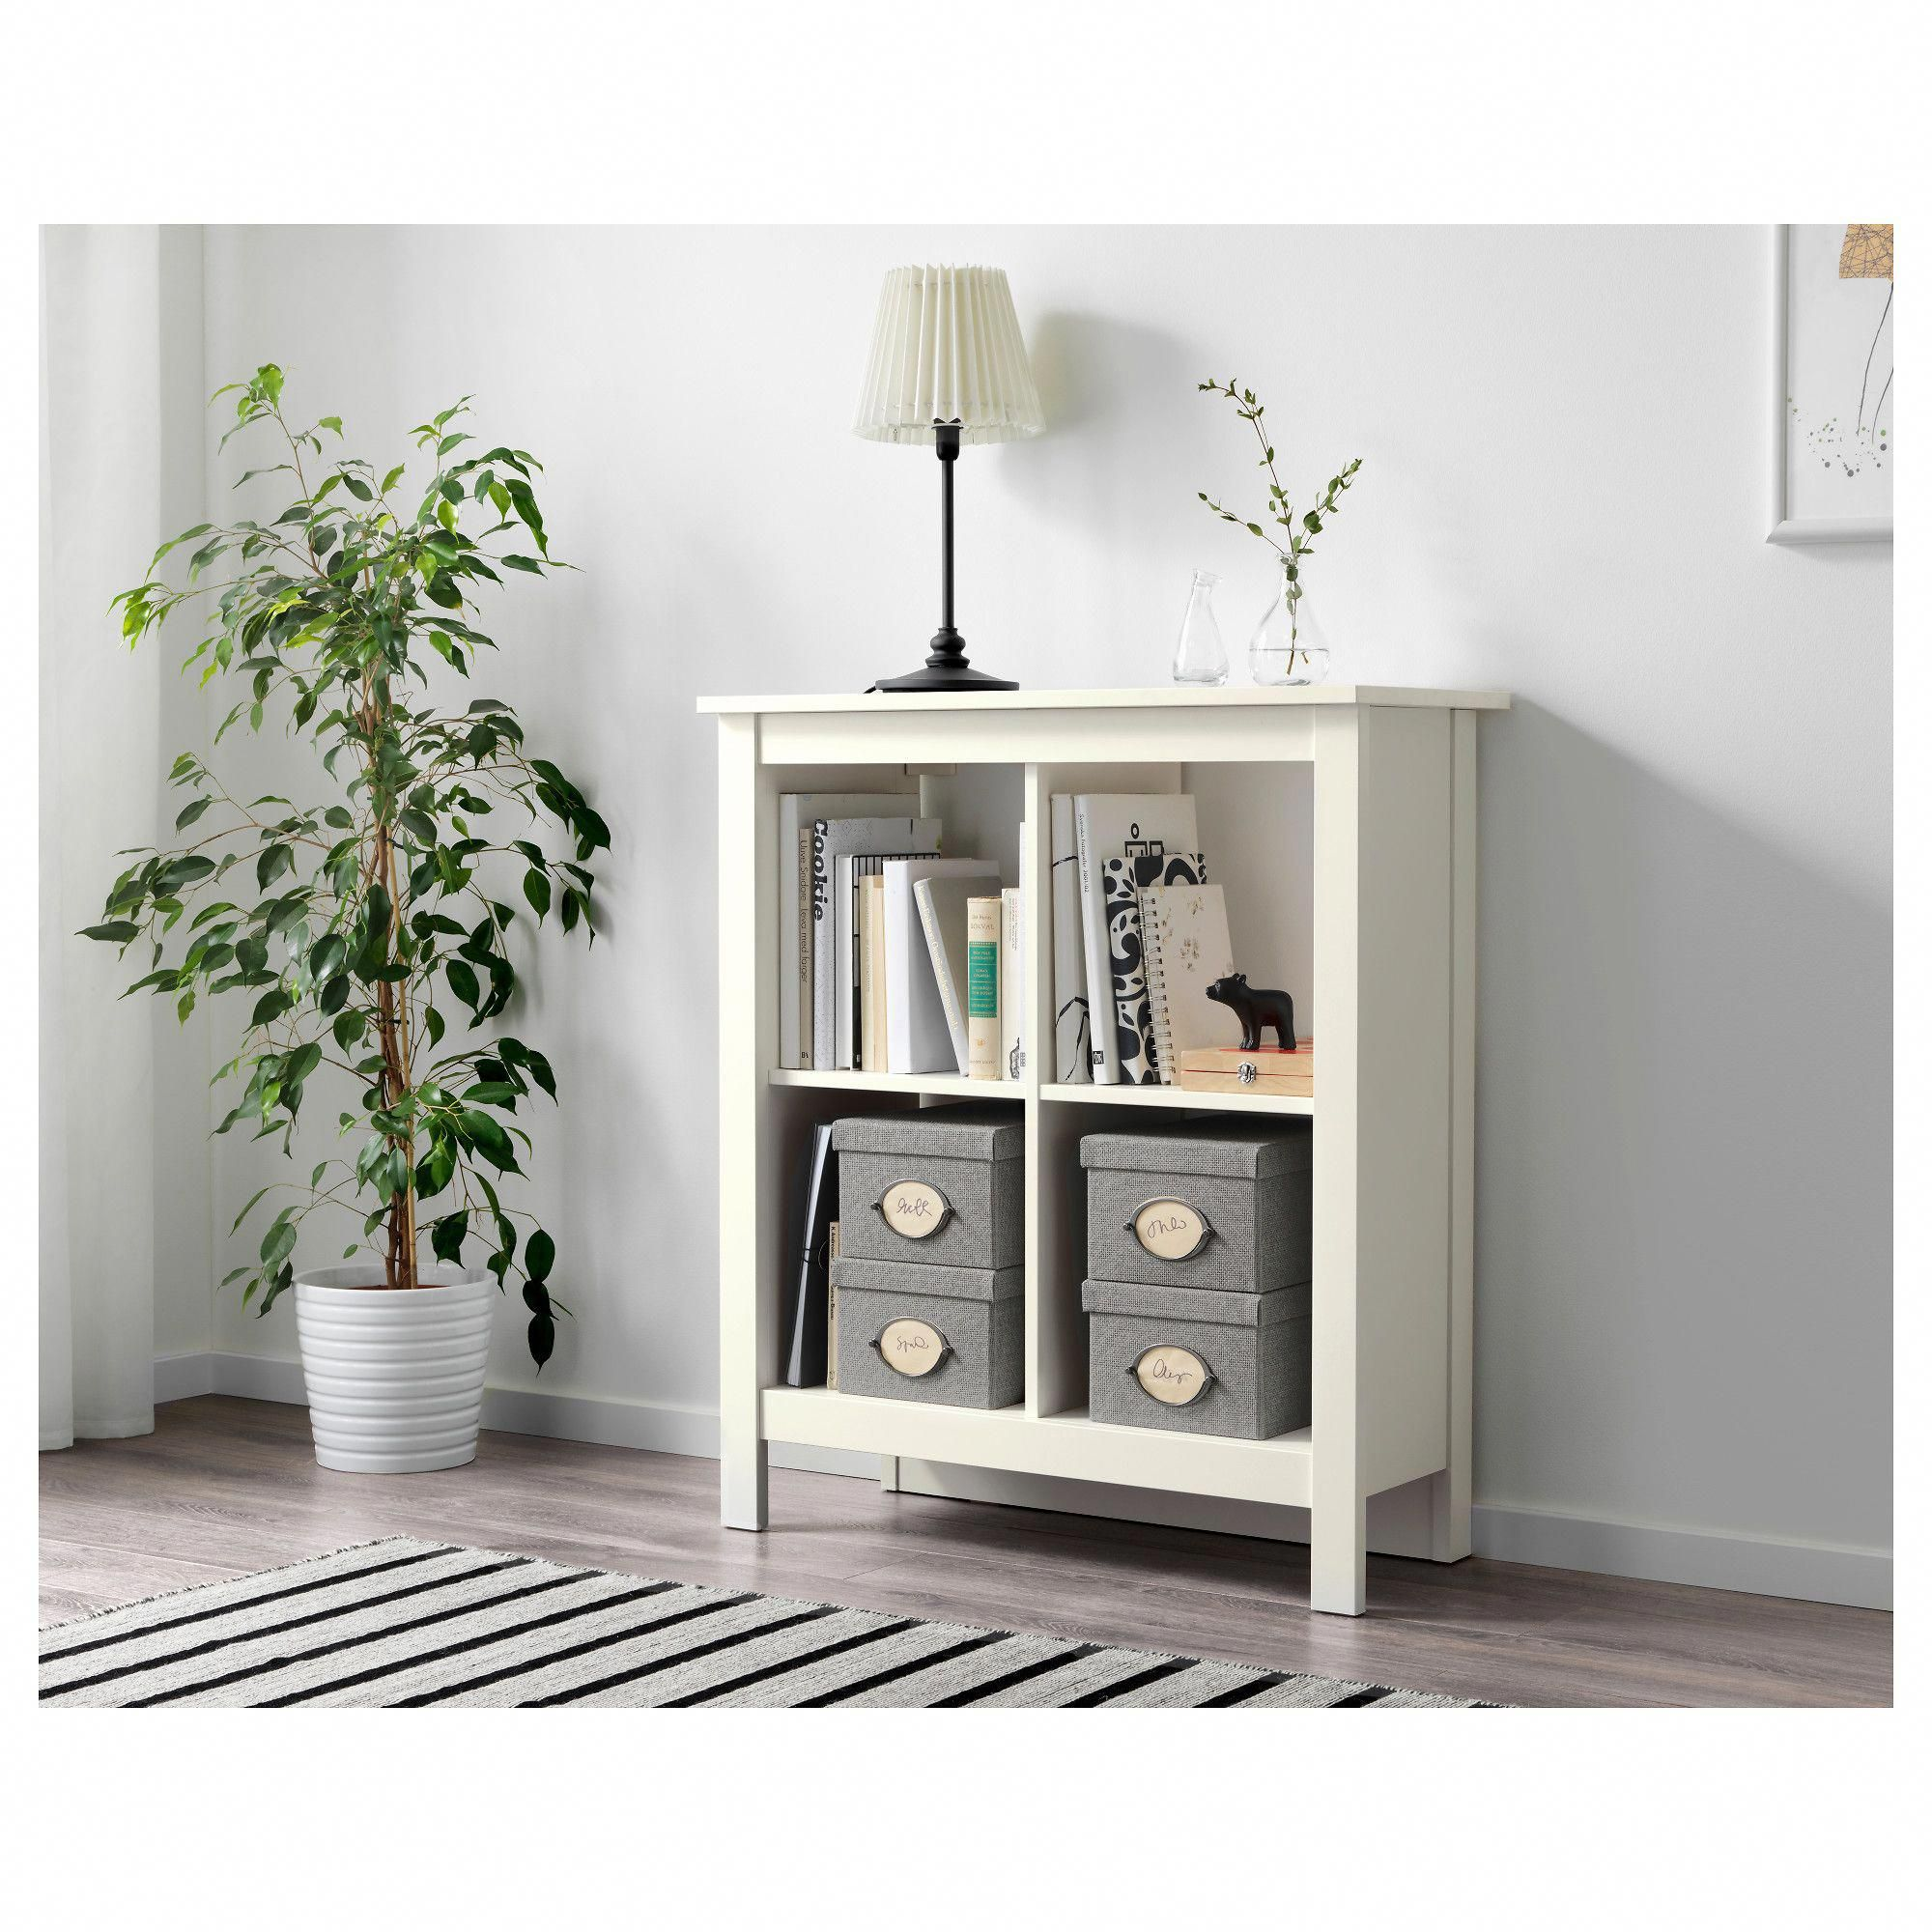 and perhaps the lower version under the glass shelves/tv? ikea